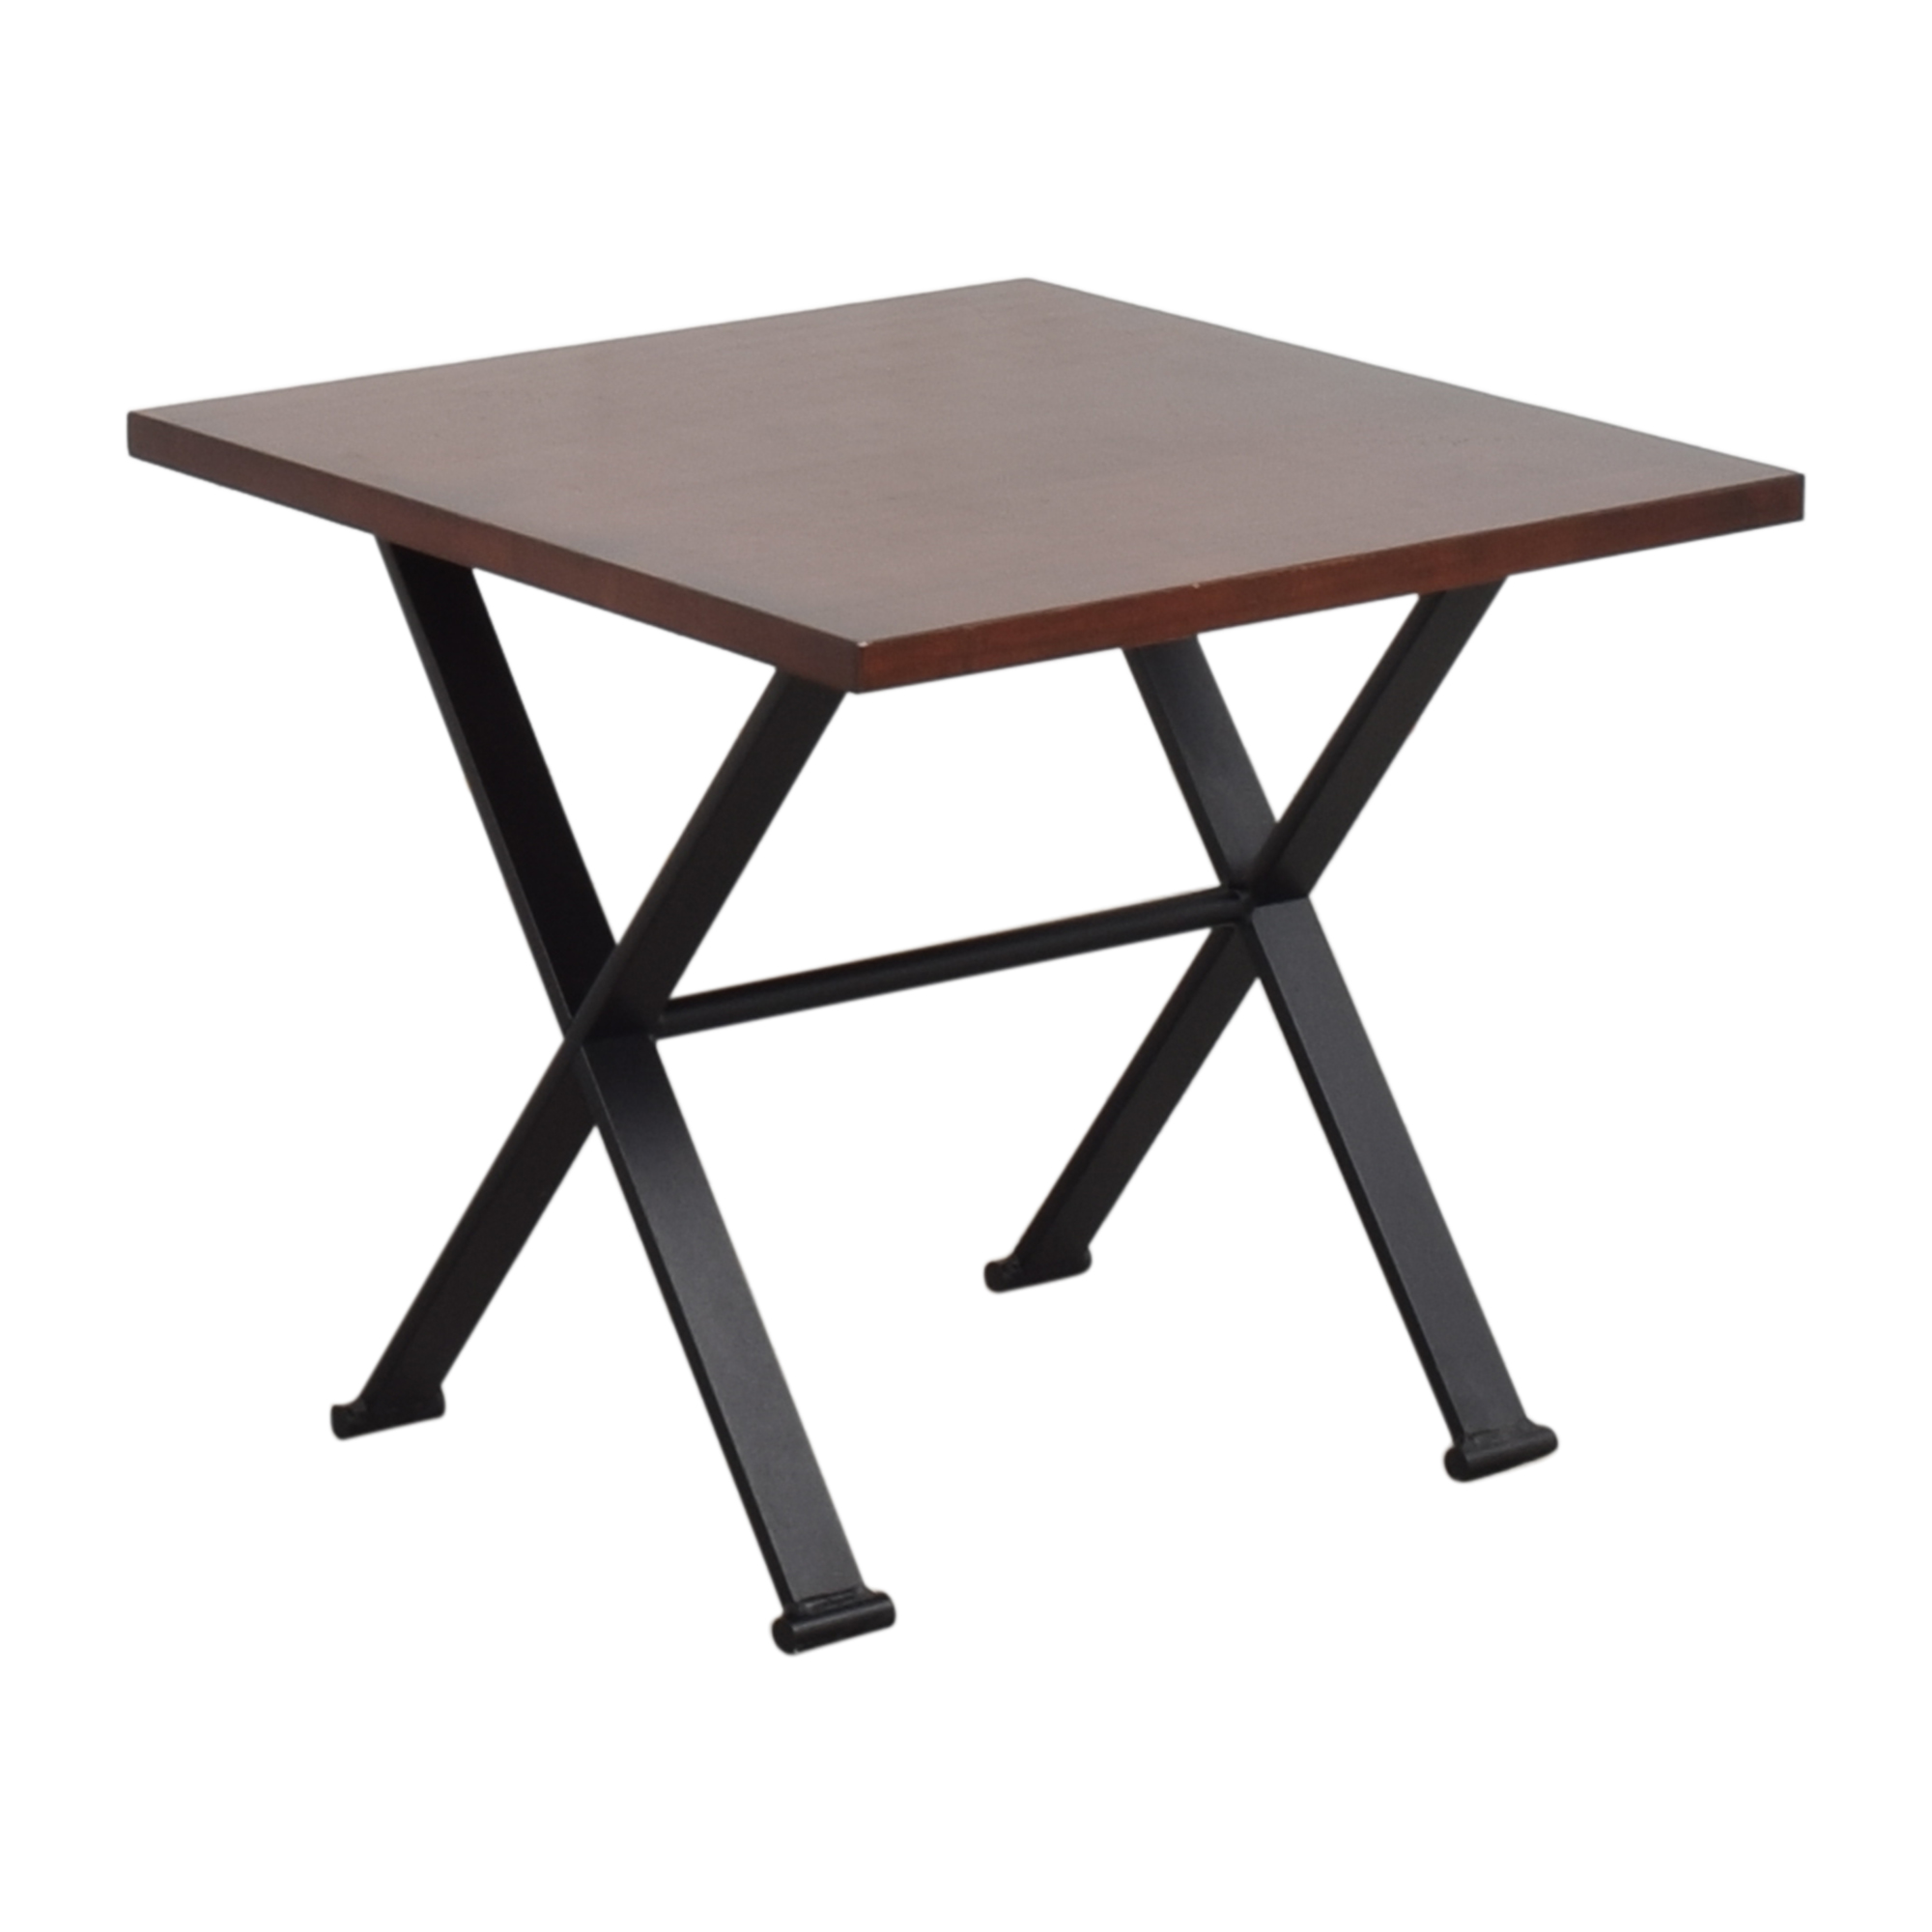 Square End Table ma